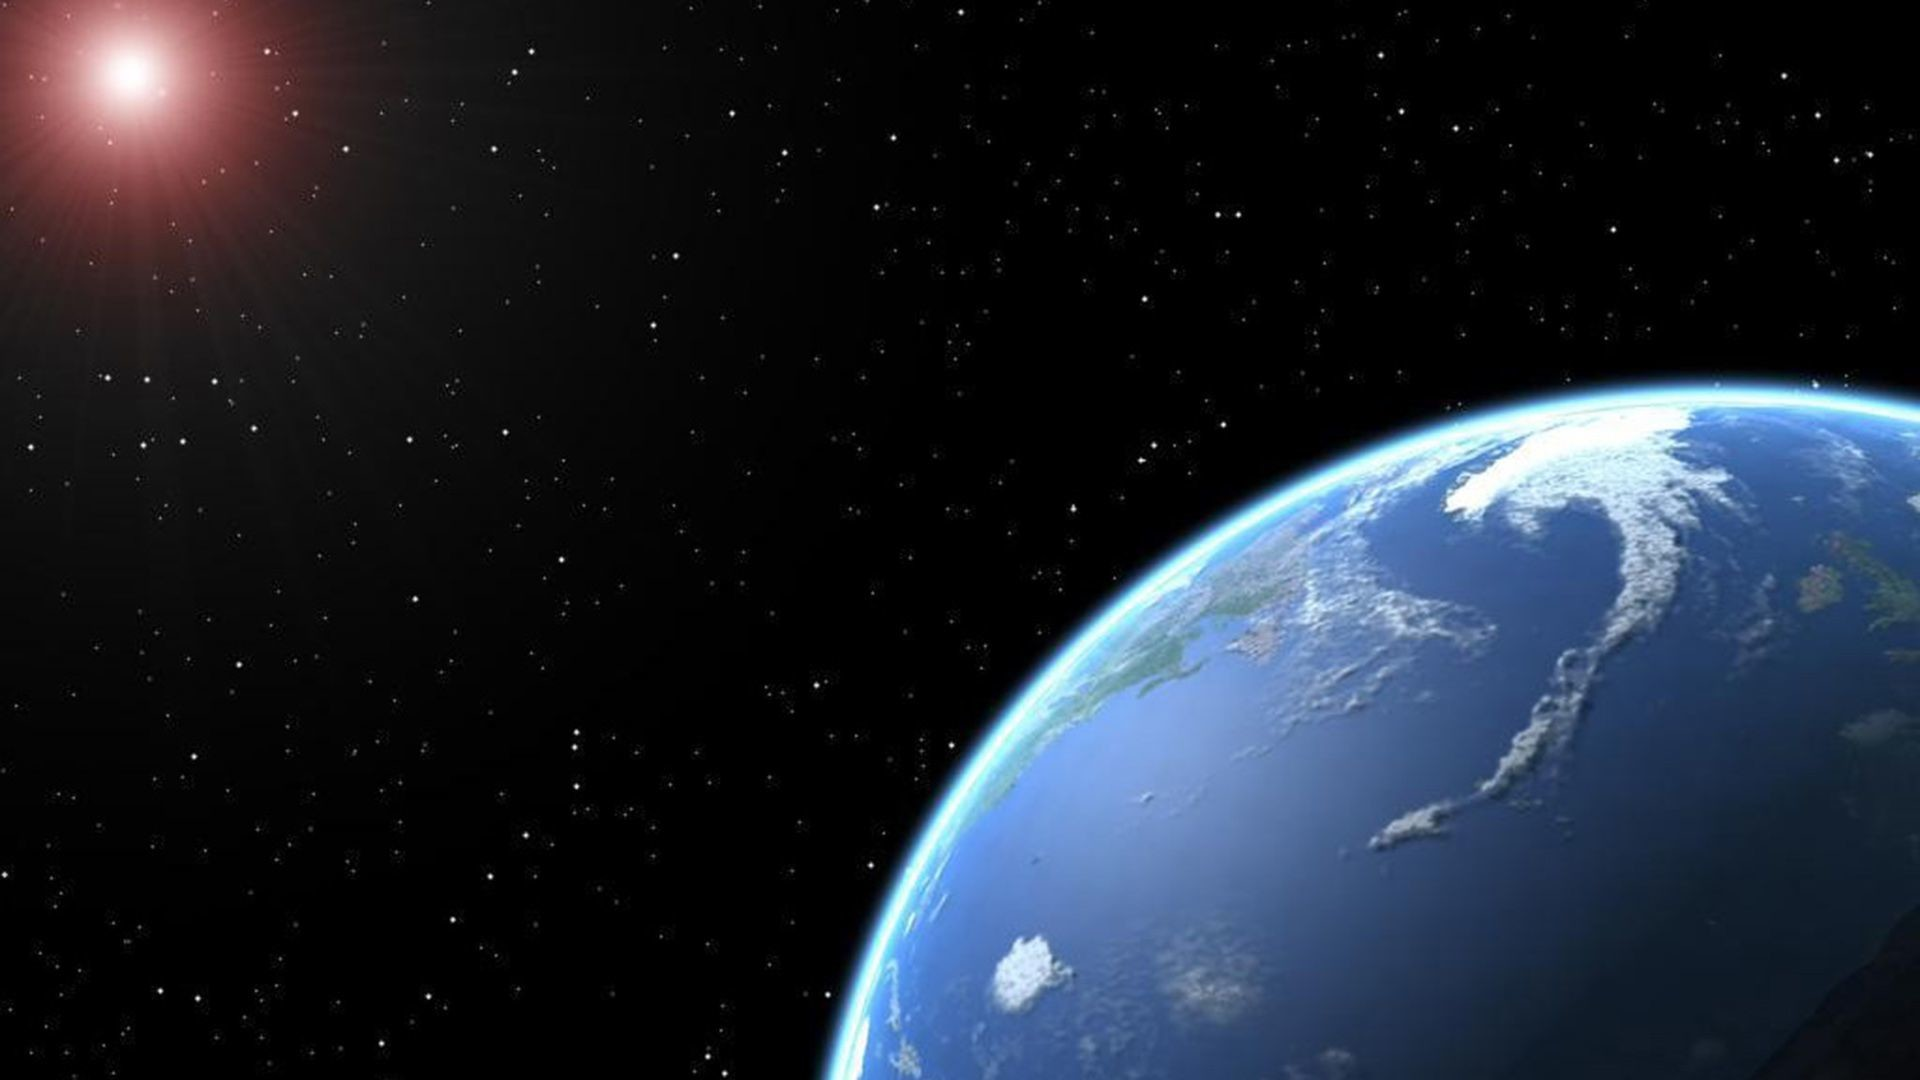 Real Space Hd Wallpapers 1080p (page 2) – Pics about space